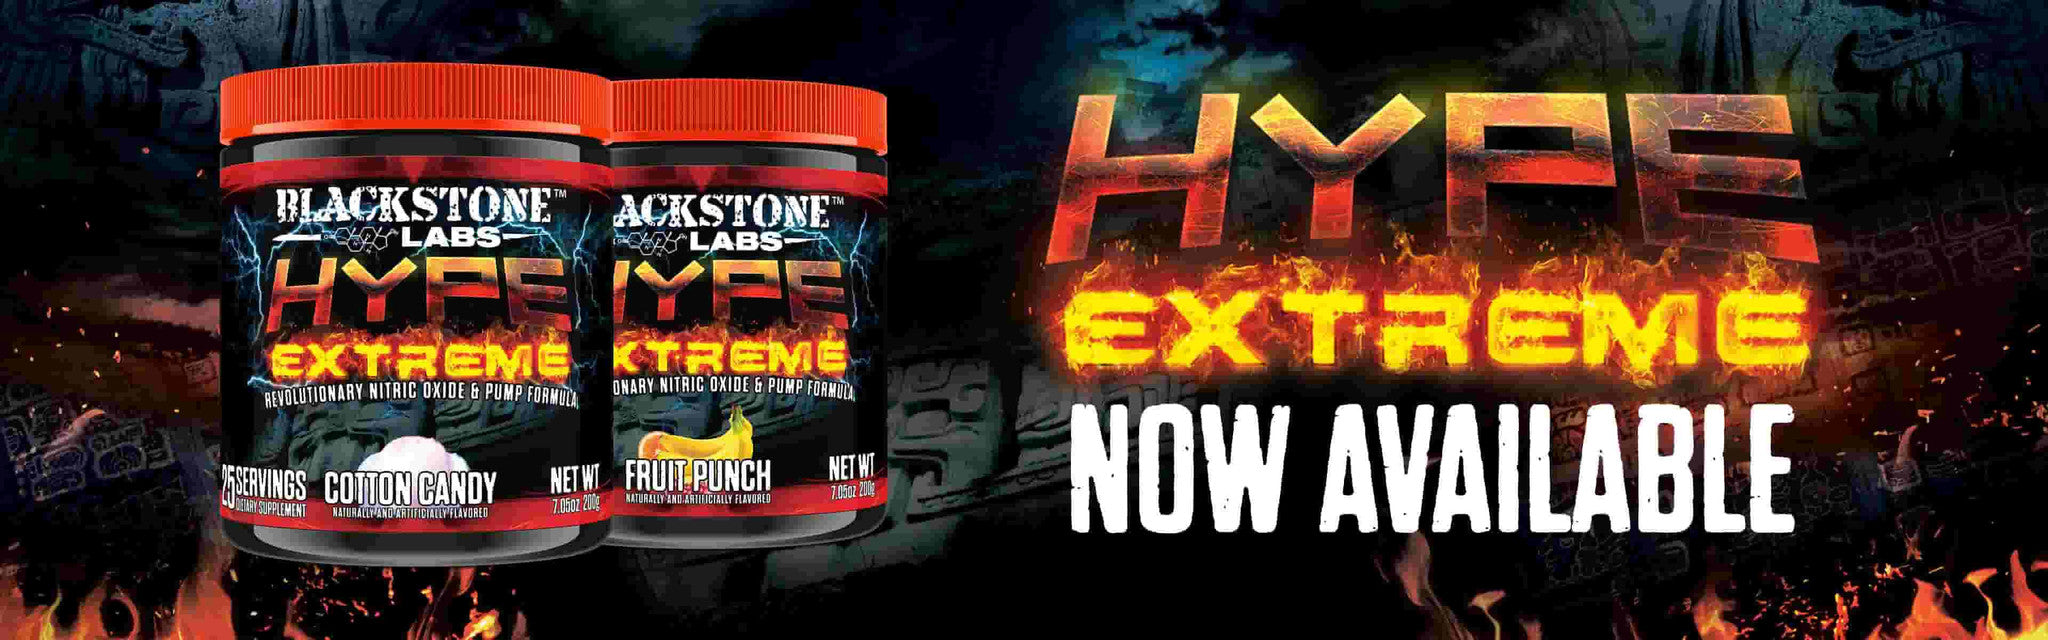 Blackstone Labs | Hype Extreme Availabl